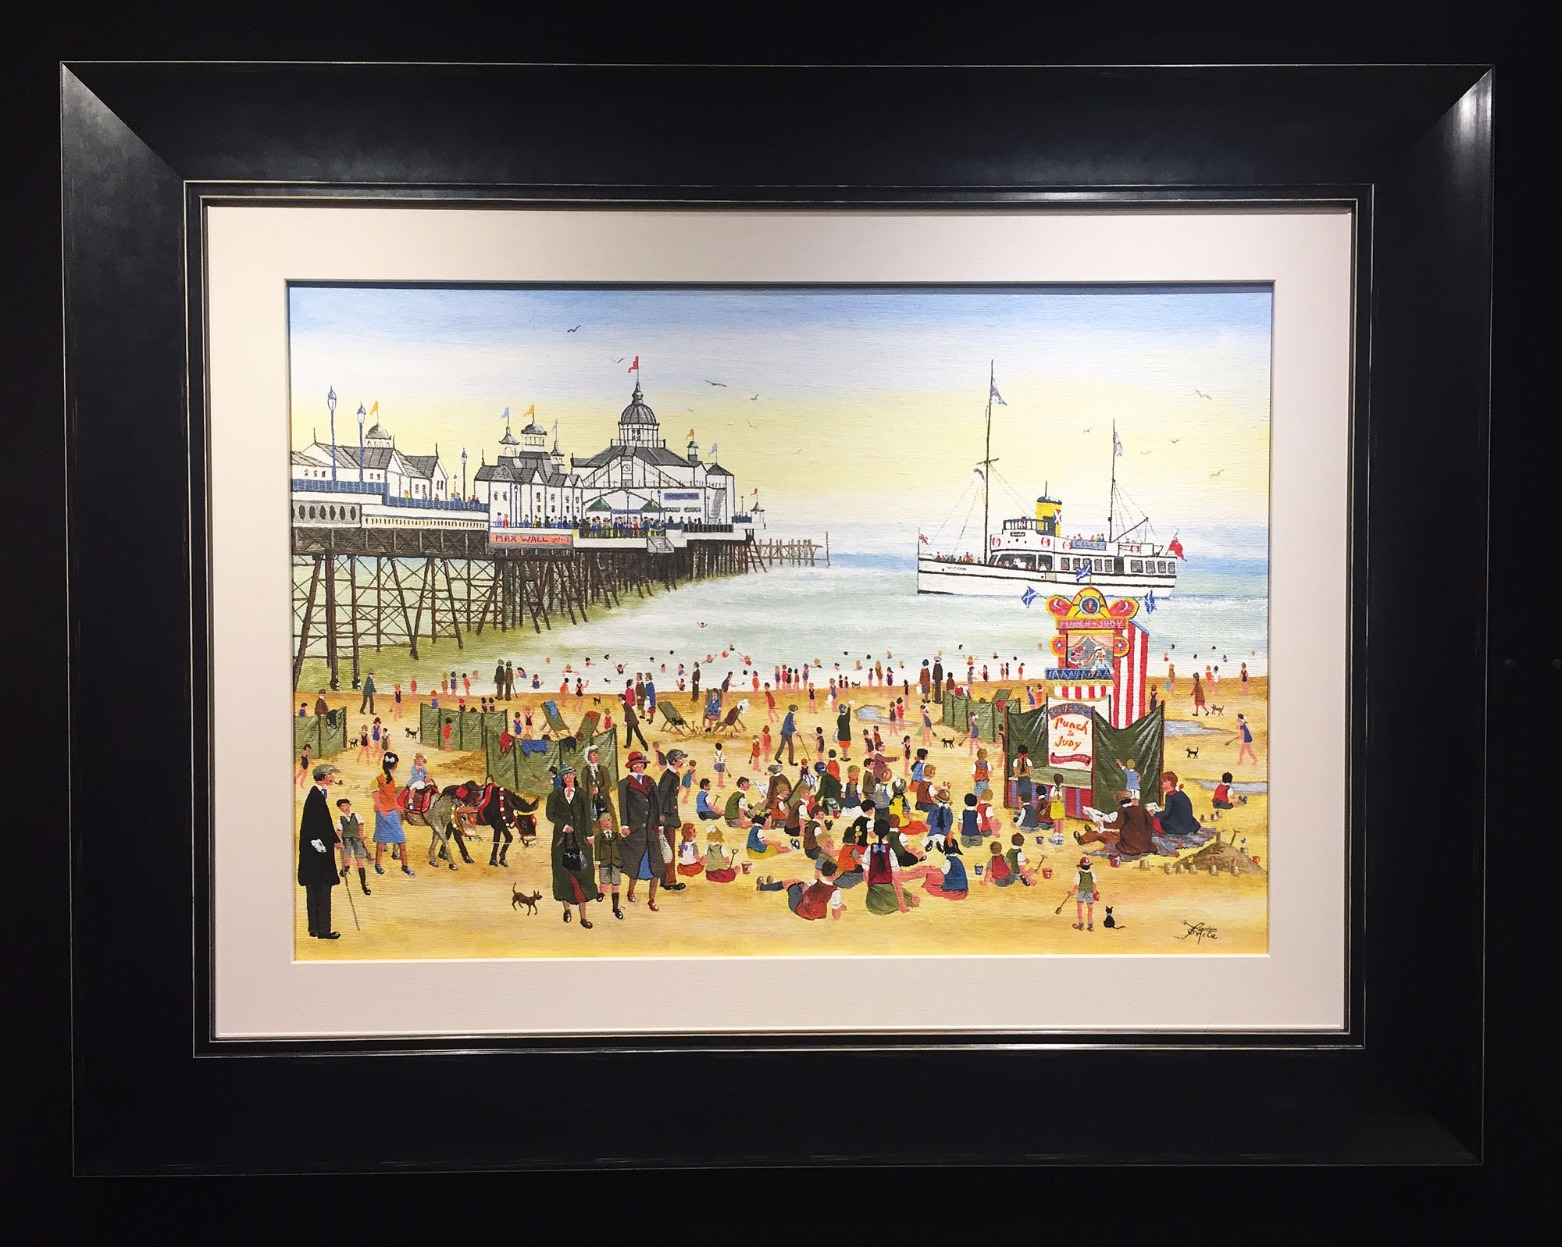 At the Seaside by Allen Tortice